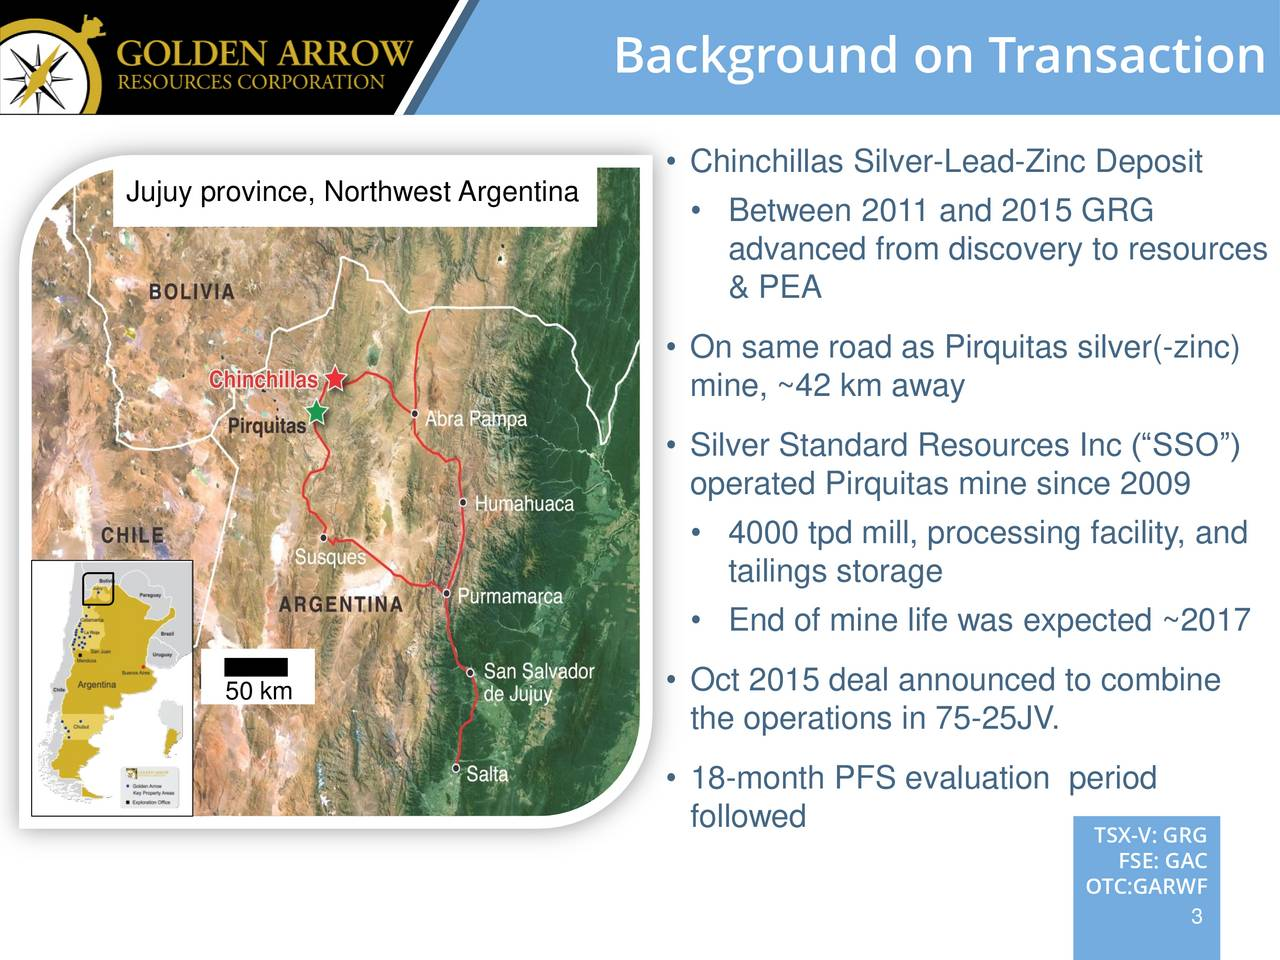 Jujuy province, Northwest Argentina  Chinchillas Silver-Lead-Zinc Deposit Between 2011 and 2015 GRG advanced from discovery to resources & PEA On same road as Pirquitas silver(-zinc) mine, ~42 km away Silver Standard Resources Inc (SSO) operated Pirquitas mine since 2009 4000 tpd mill, processing facility, and tailings storage End of mine life was expected ~2017 Oct 2015 deal announced to combine 50 km the operations in 75-25JV. 18-month PFS evaluation period followed TSX-V: GRG FSE: GAC OTC:GARWF 3